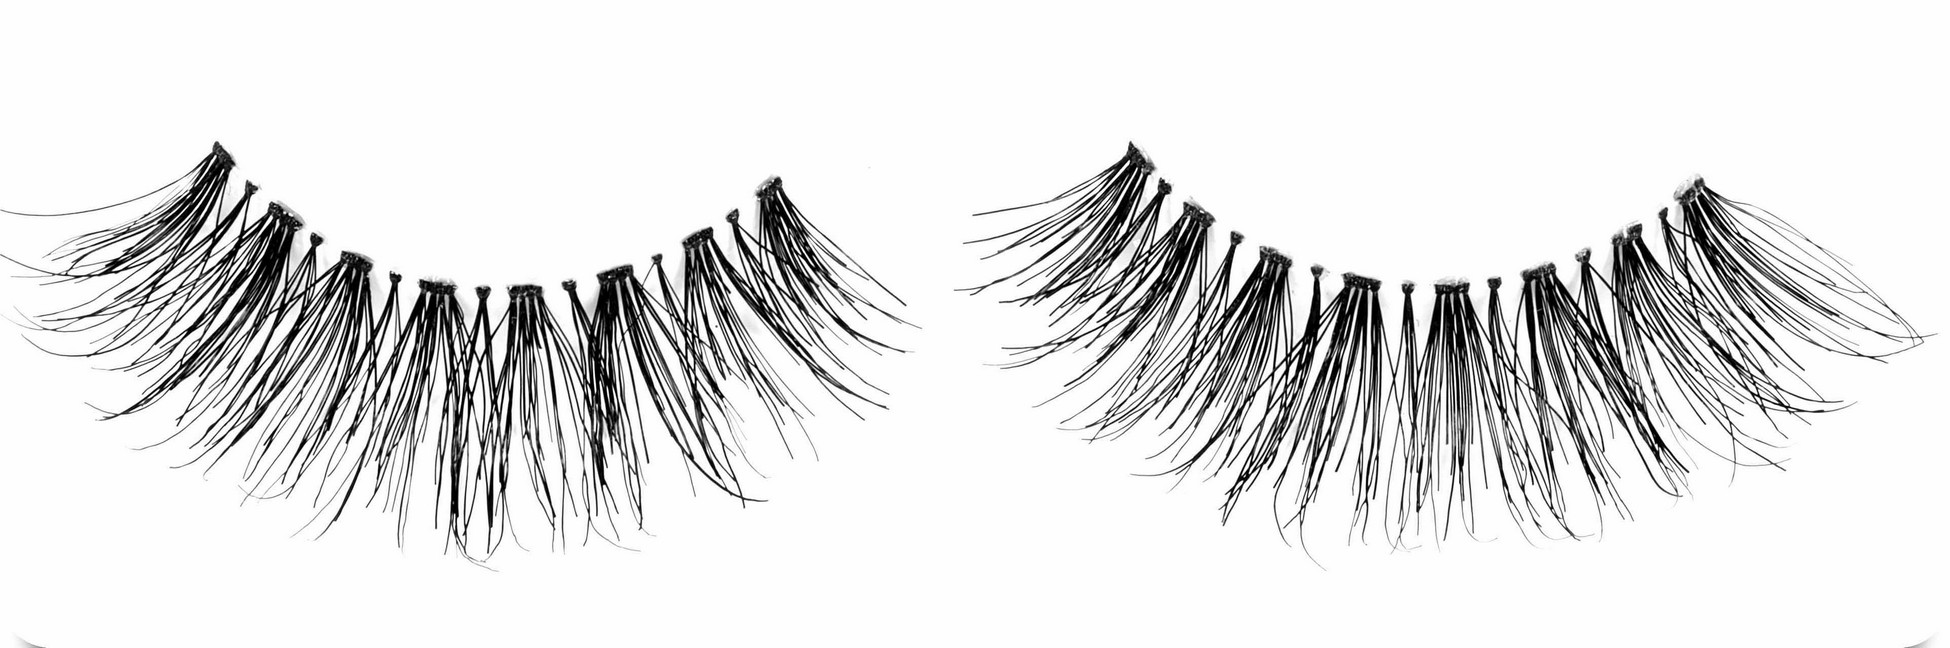 5e622533fe7 Ardell Natural Eyelashes Wispies 700, Ardell Natural Eyelashes - Madame  Madeline Lashes